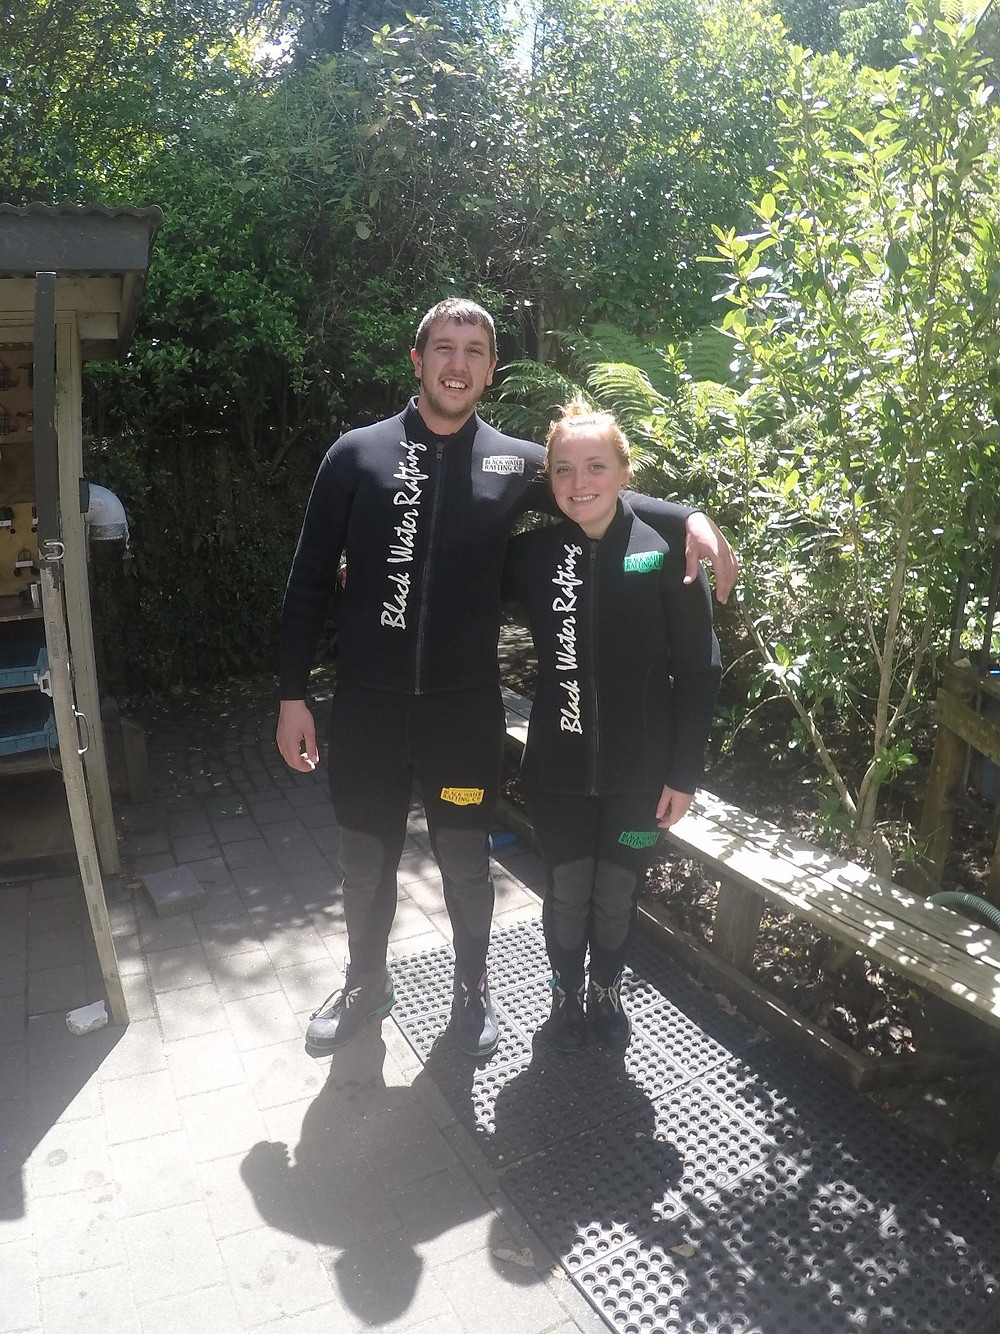 Missy and Lucas in wetsuits ready to blackwater raft